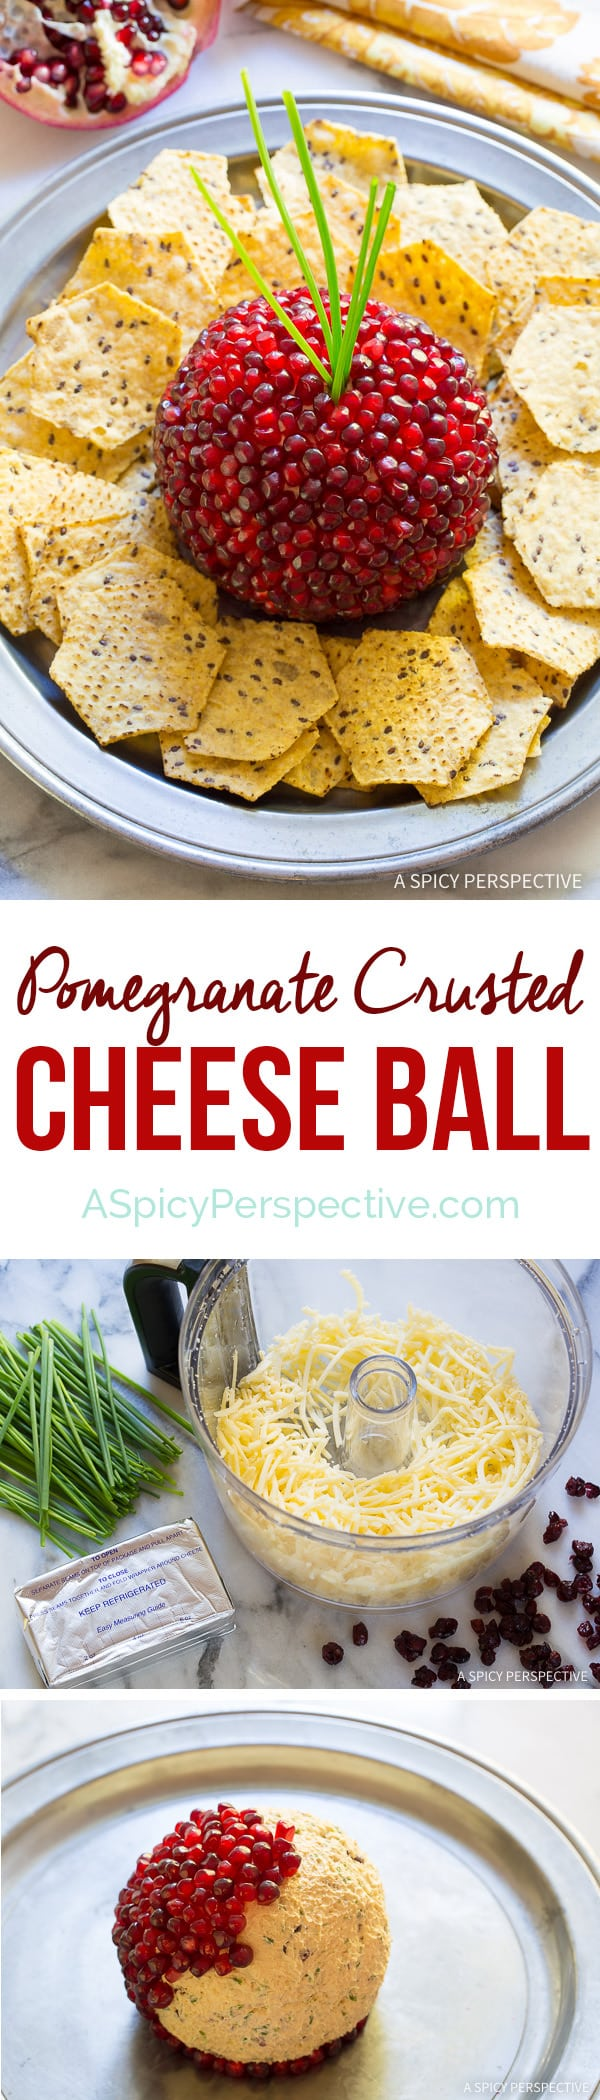 Easy to Make 7-Ingredient Holiday Pomegranate Crusted Cheese Ball Recipe on ASpicyPerspective.com